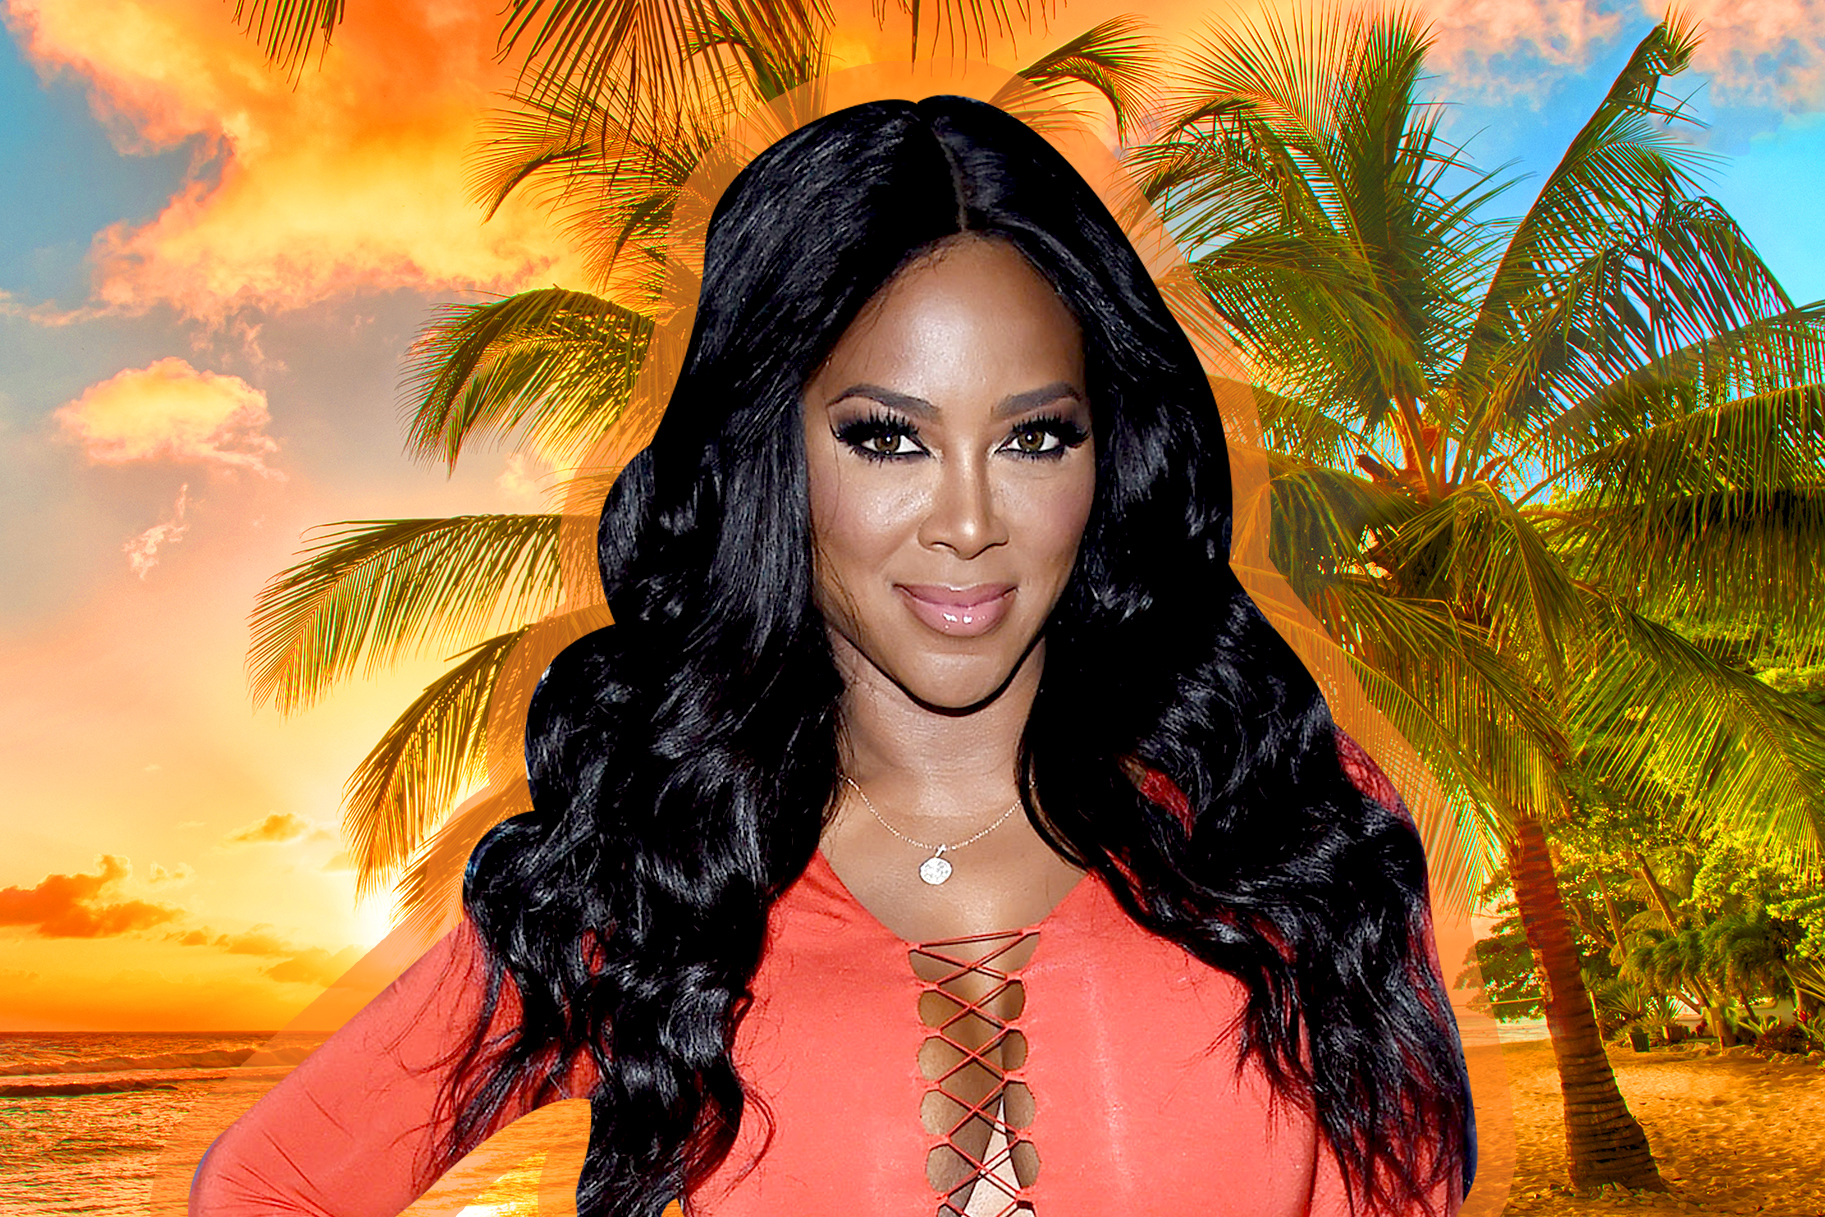 Kenya Moore's Latest Gorgeous Photo On Social Media Is Praised By Fans: 'The Prettiest On The HW Franchise!'